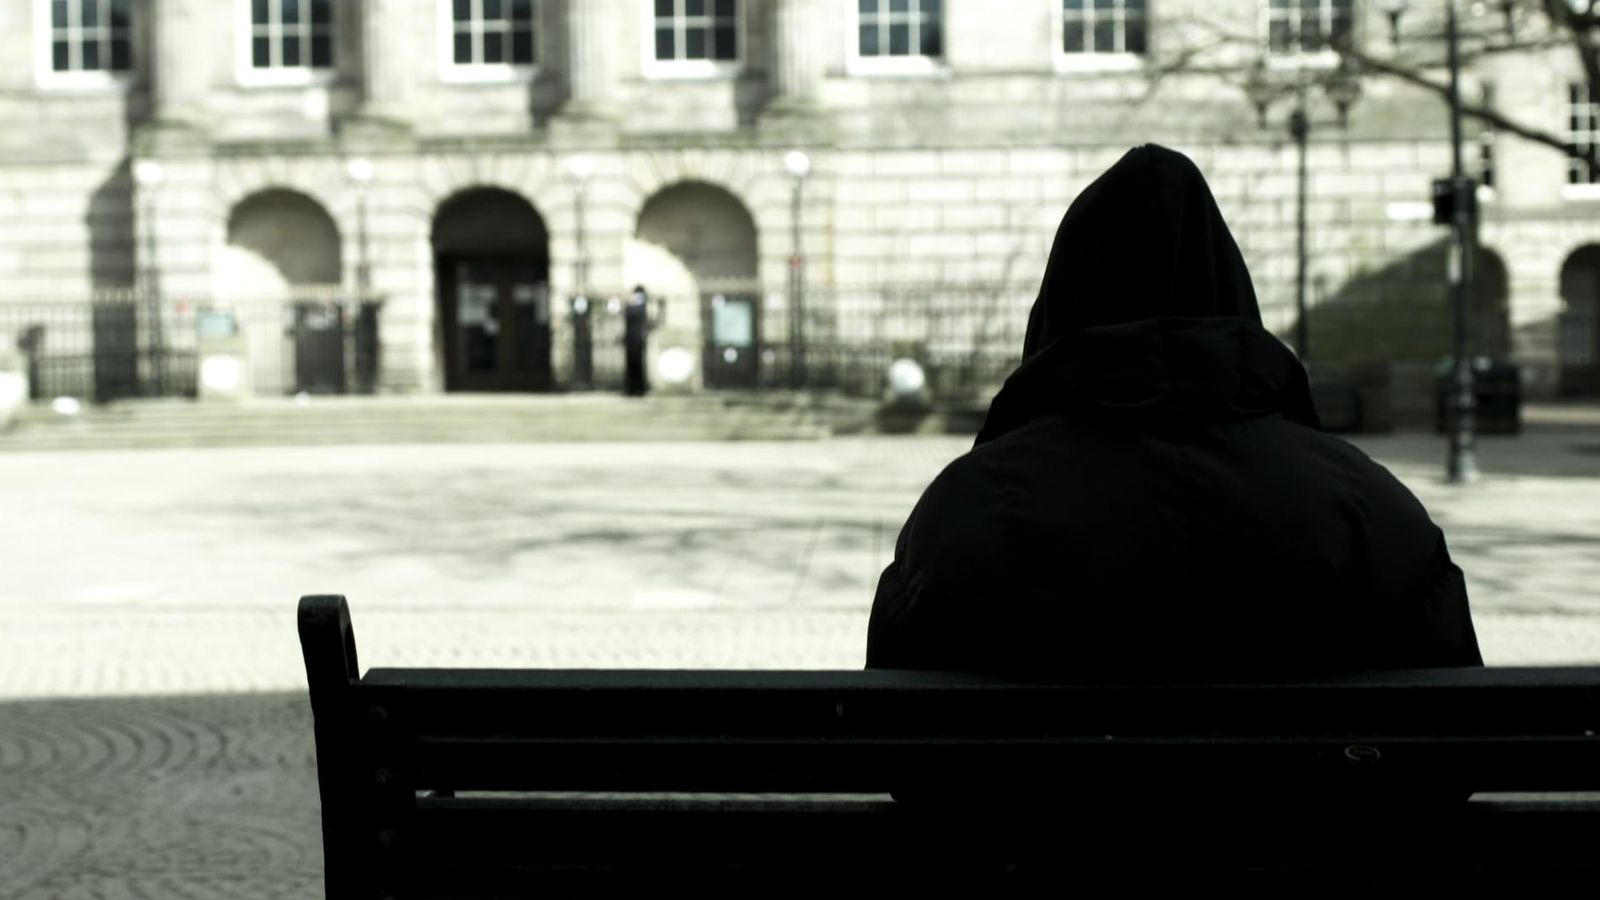 County lines gangs have changed tactics during COVID - and their victims are getting even younger